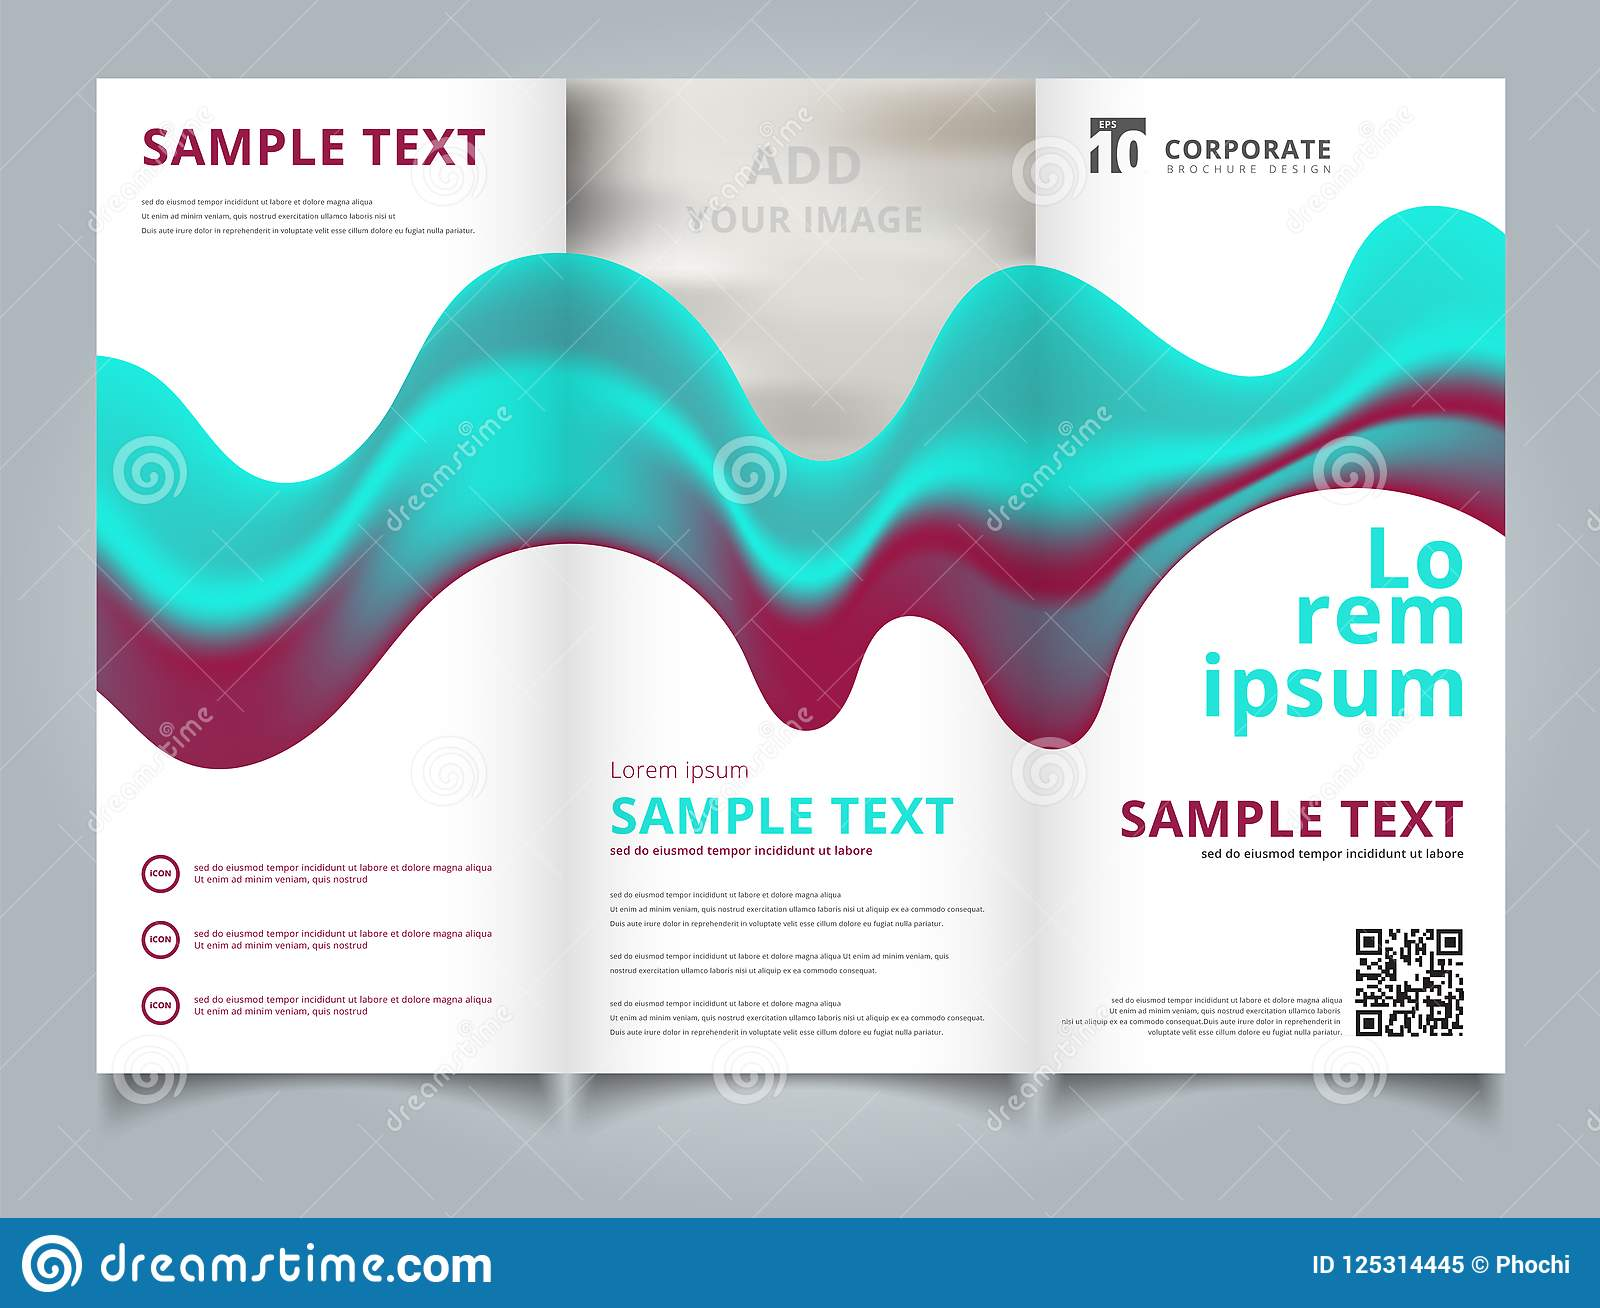 Template Brochure Layout Design Abstract 3d Blue And Pink Color